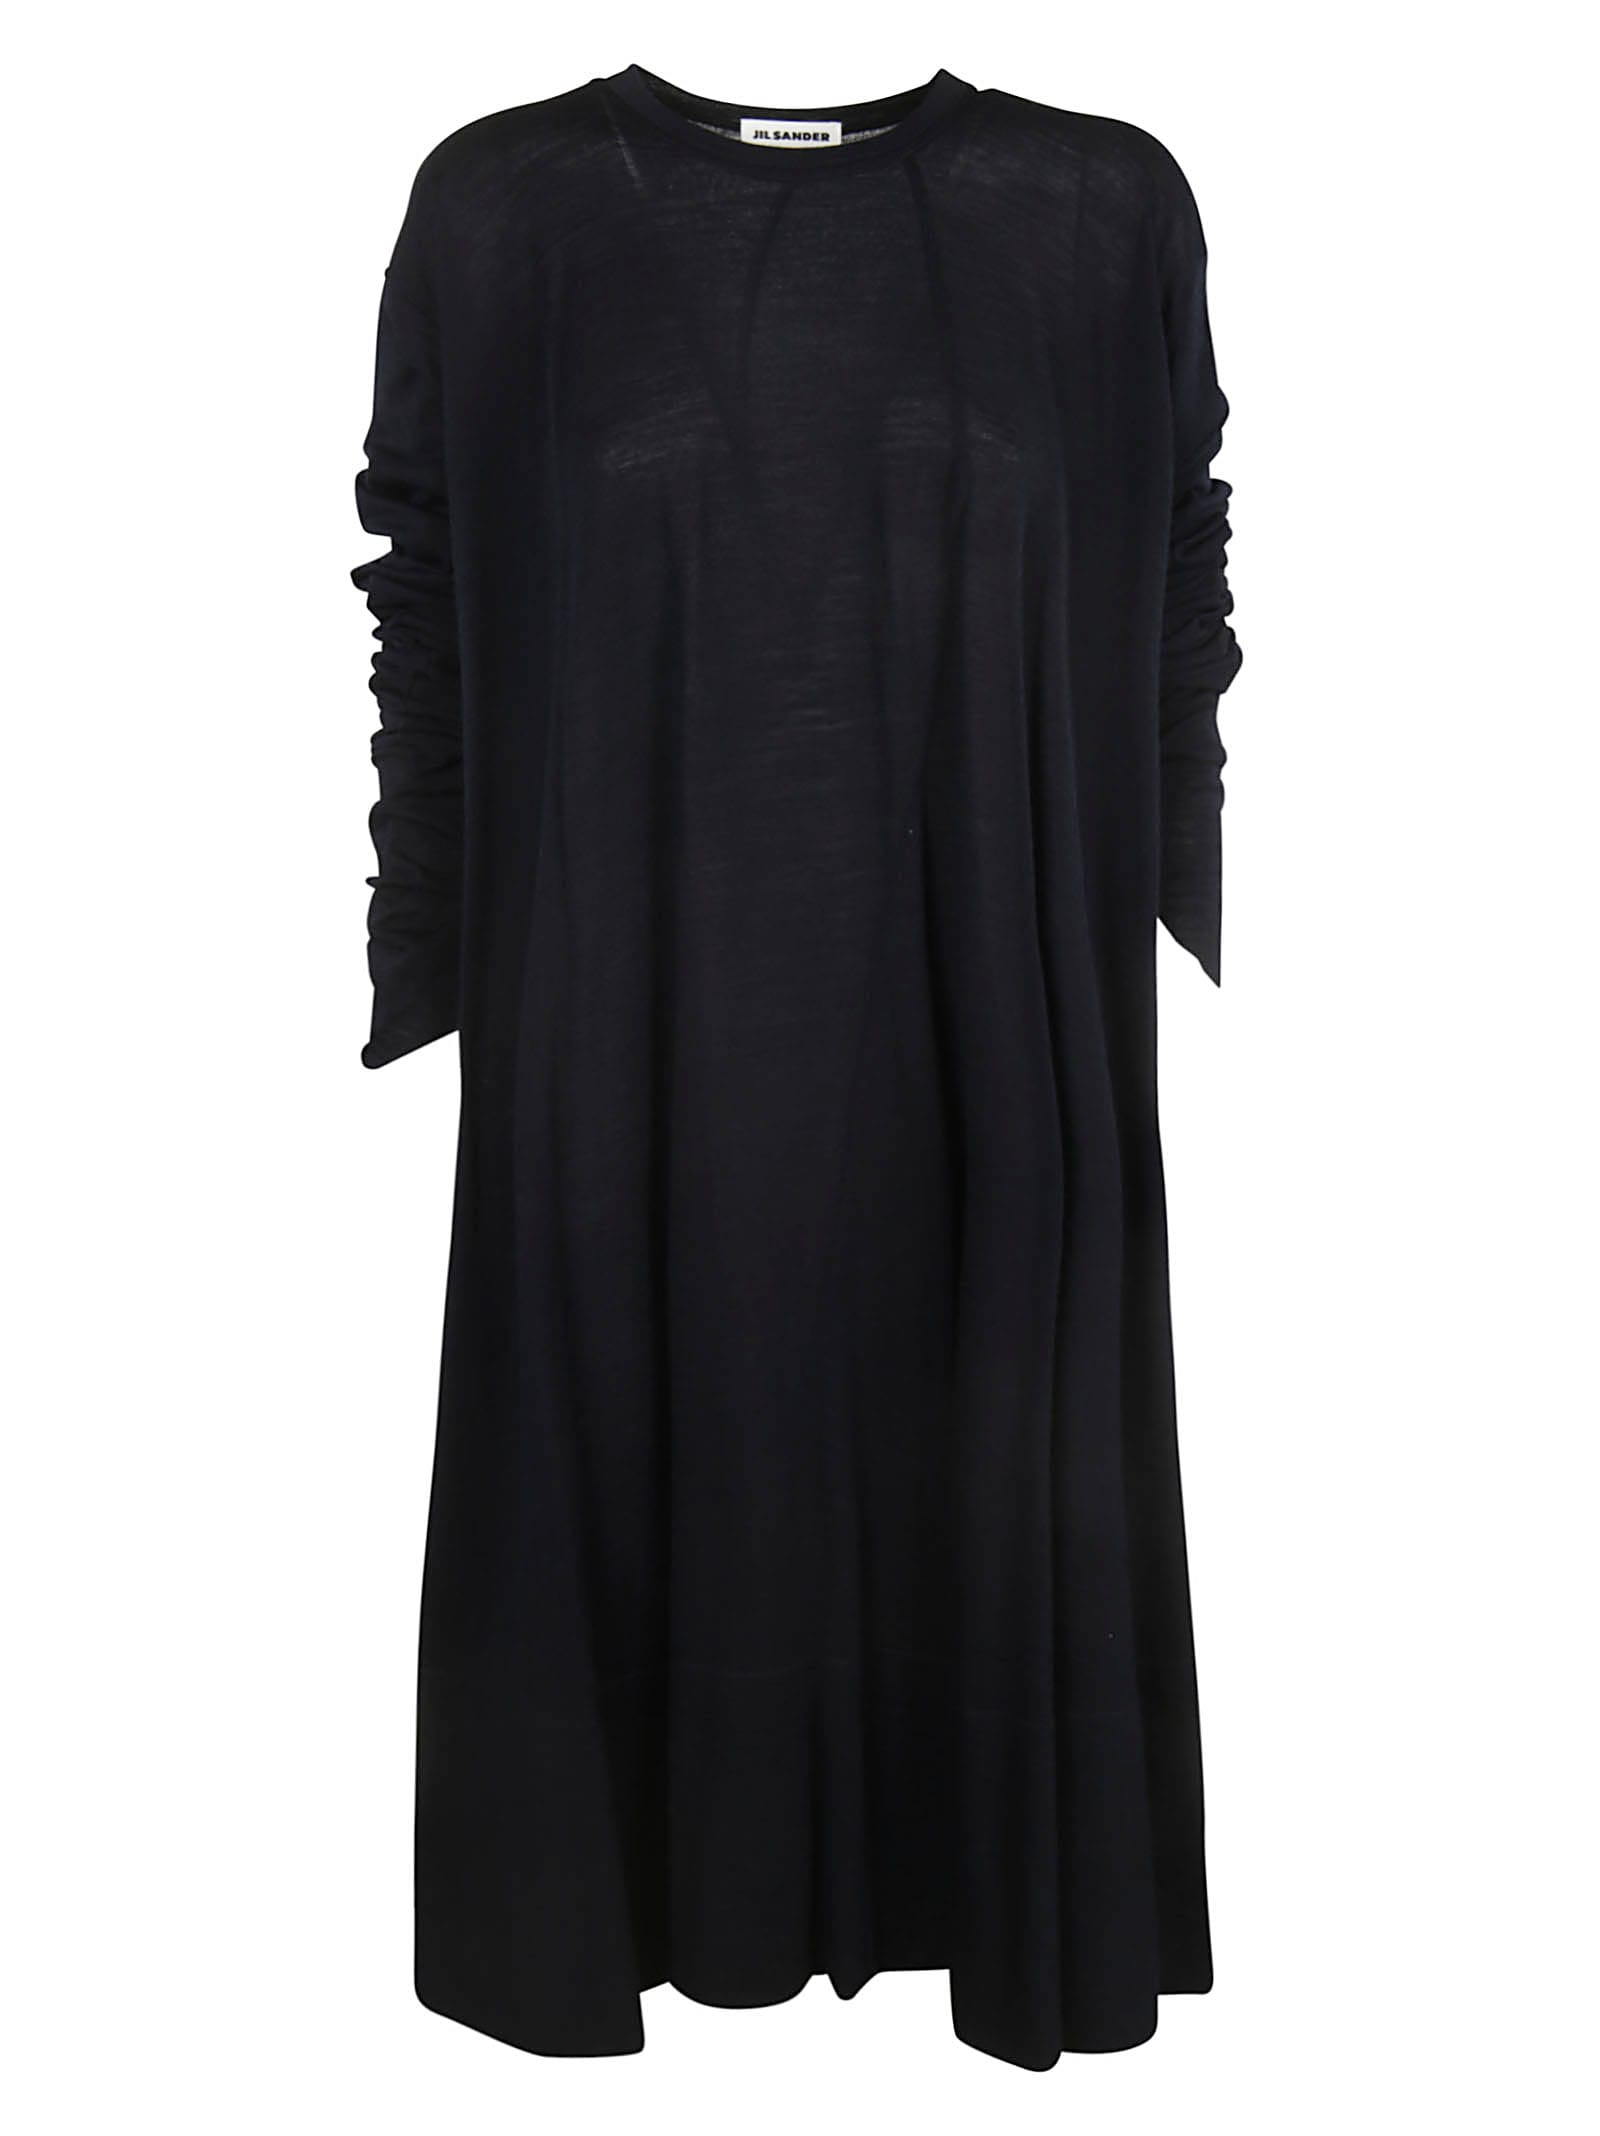 Jil Sander Oversized Dress